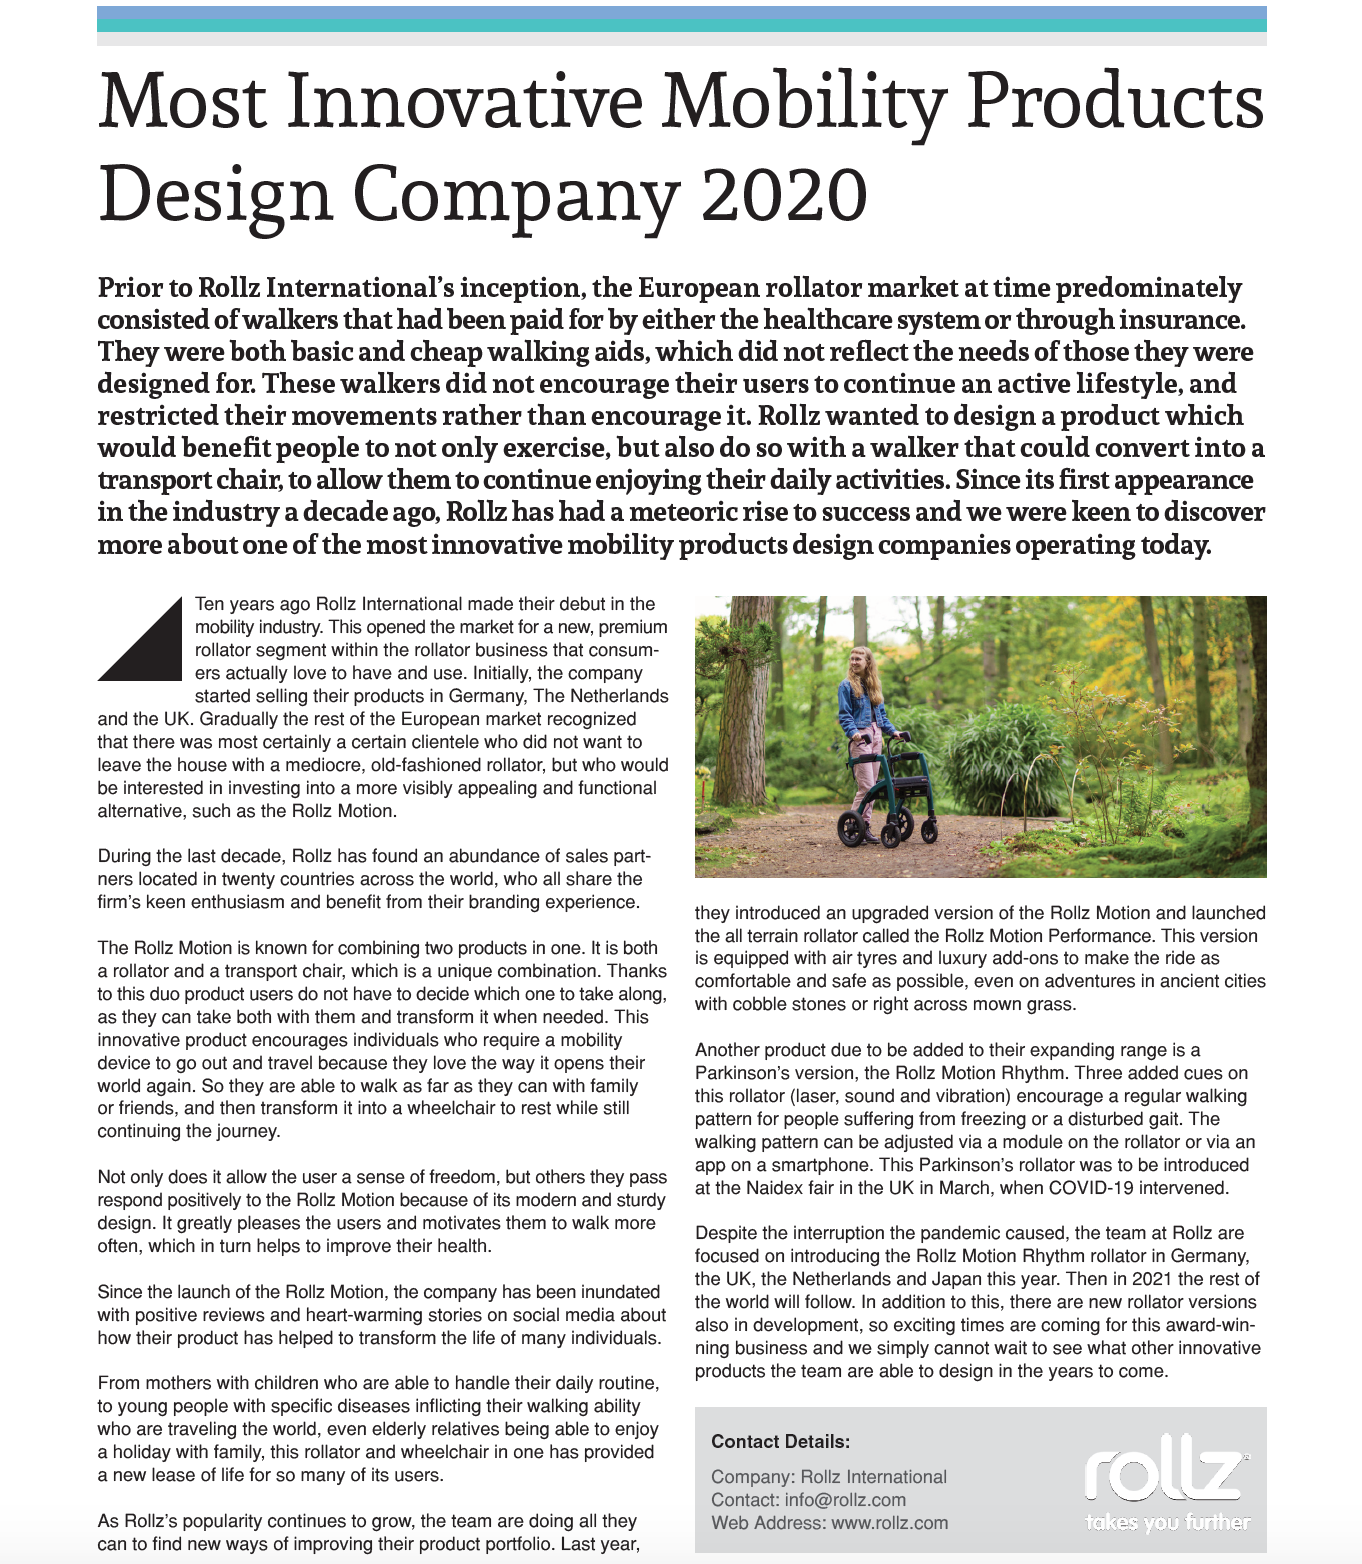 Most Innovative Mobility Products Design Company 2020